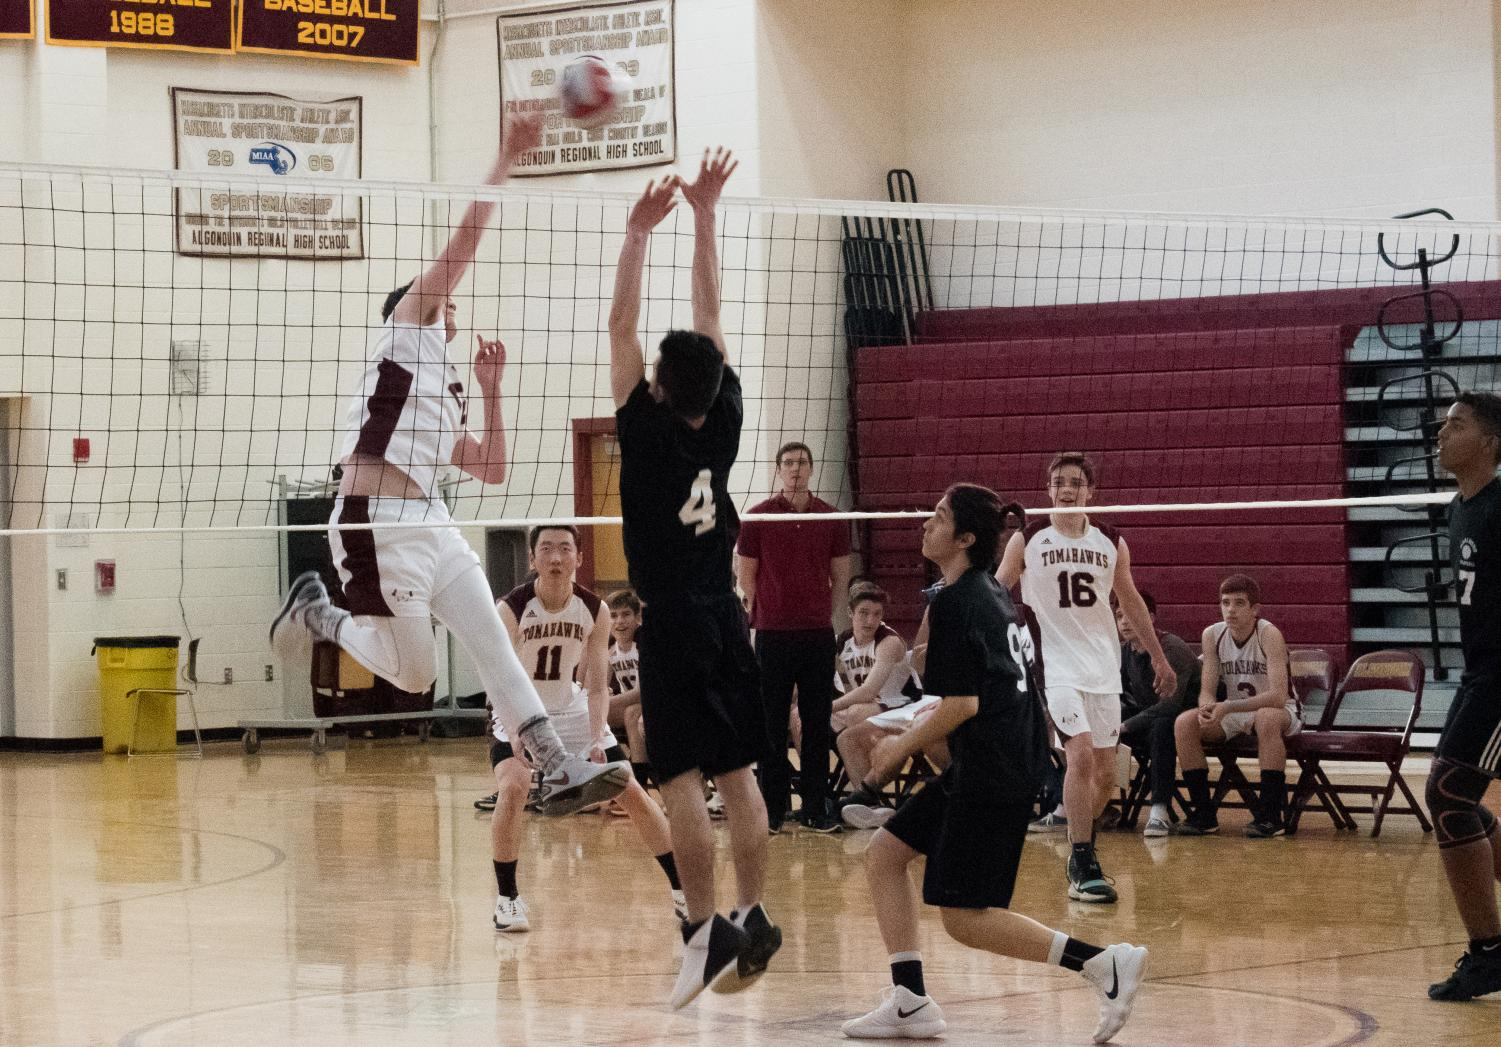 Senior Cam Poutre spikes the volleyball while his opponent jumps up for a block.